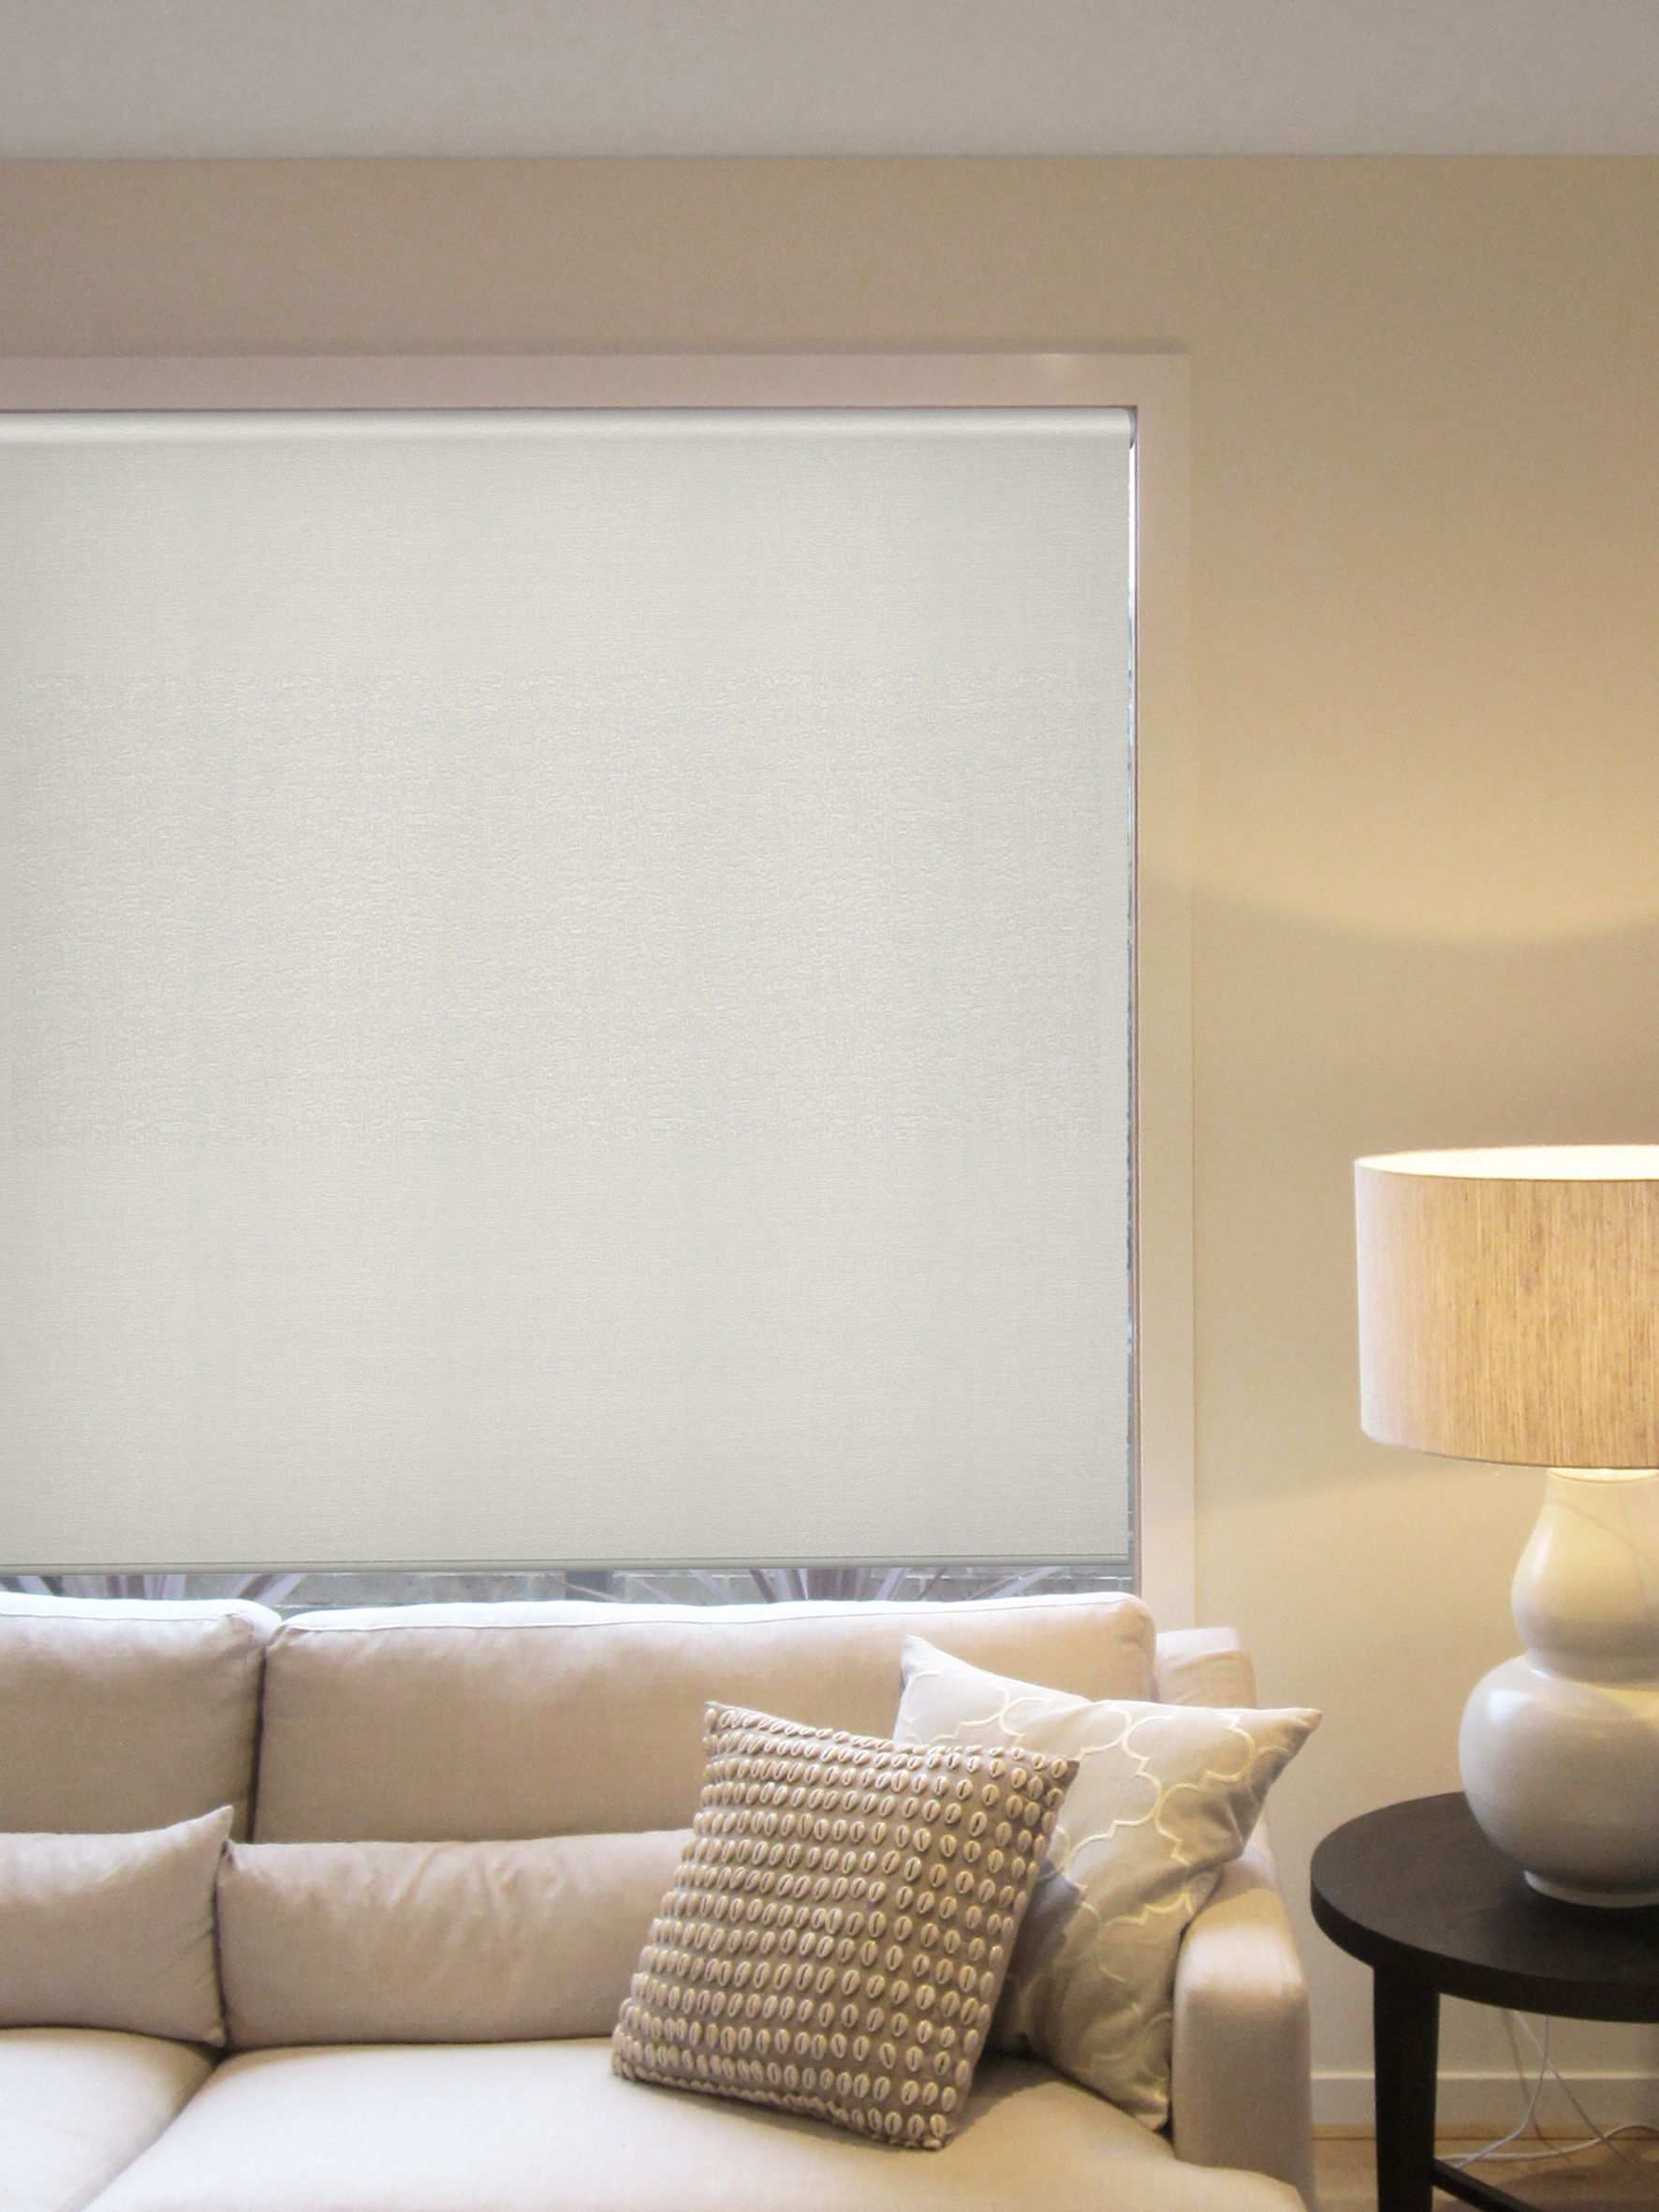 Omni Roller Blind White Control light and privacy with